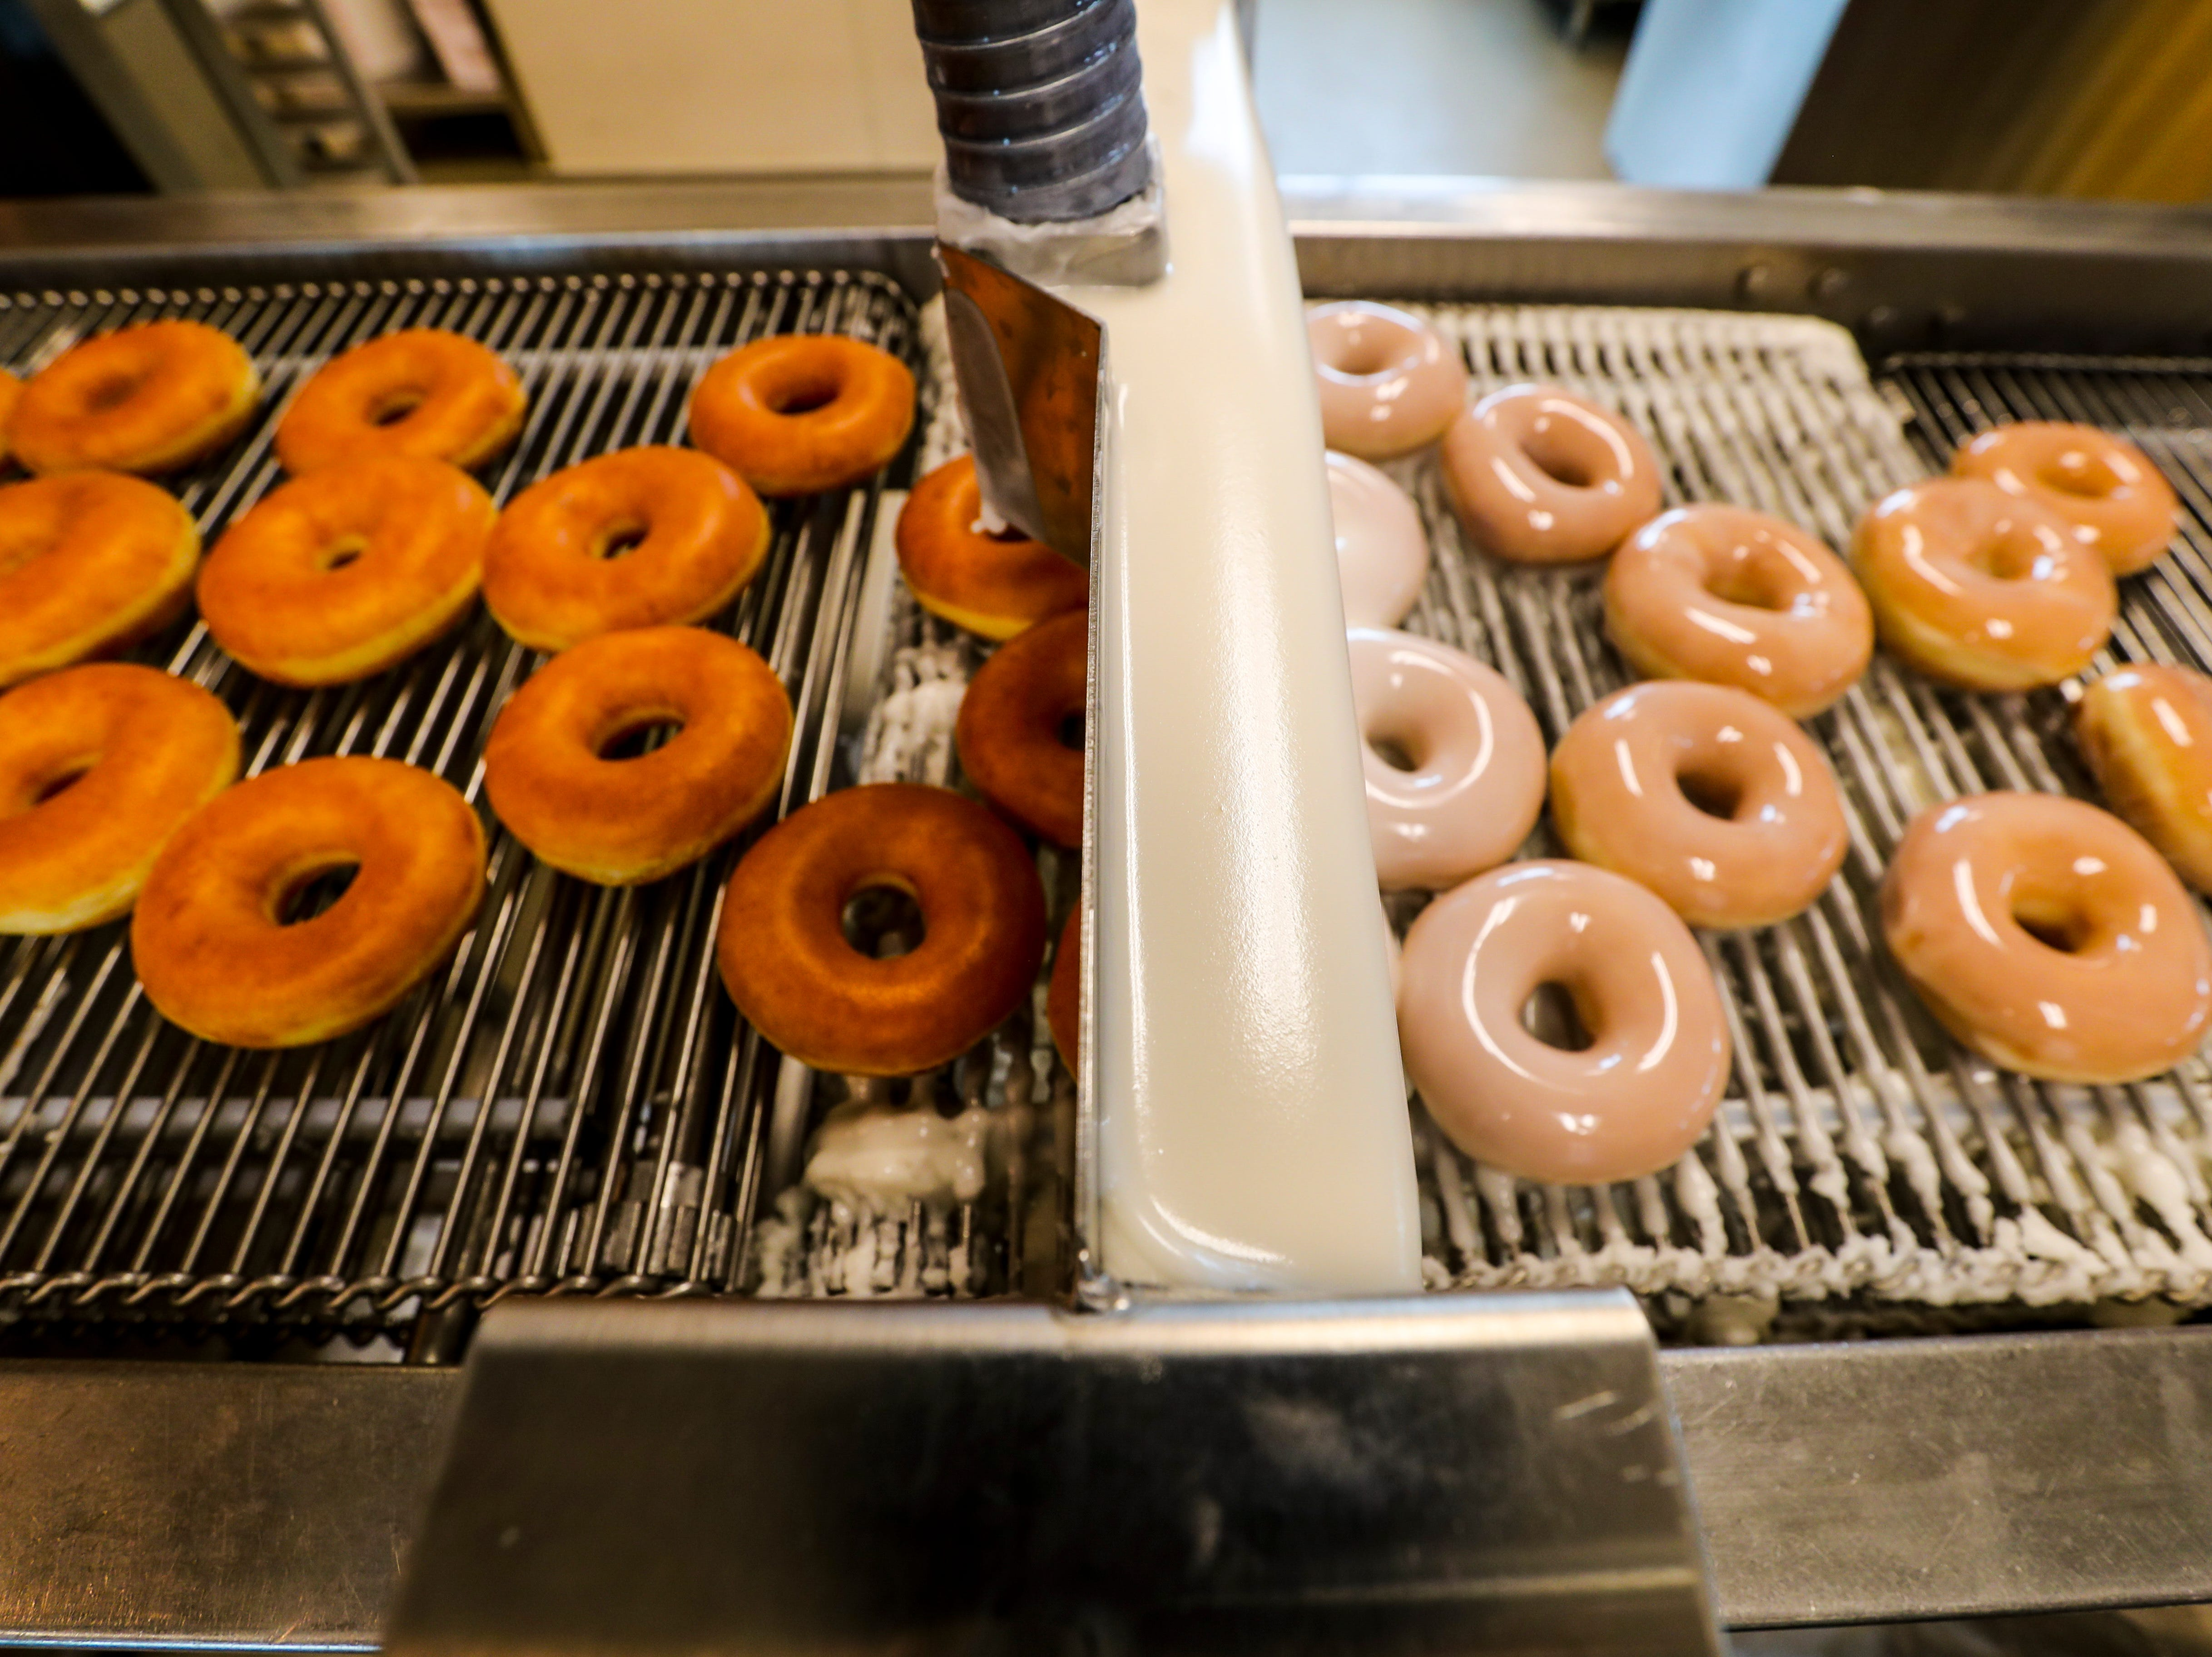 The workers who will make the Krispy Kreme doughnuts daily have been practicing up. The doughnuts start from freshly made dough, that is placed into a  machine that forms it into doughnuts, then to the proofer for a little over a half hour. Once they are ready the fluffy dough is flipped into oil and then flipped to the other side, leaving the signature white ring. The signature Krispy Kreme doughnut is then iced and boxed up hot and ready. The store will open in five days. October 11, 2018.